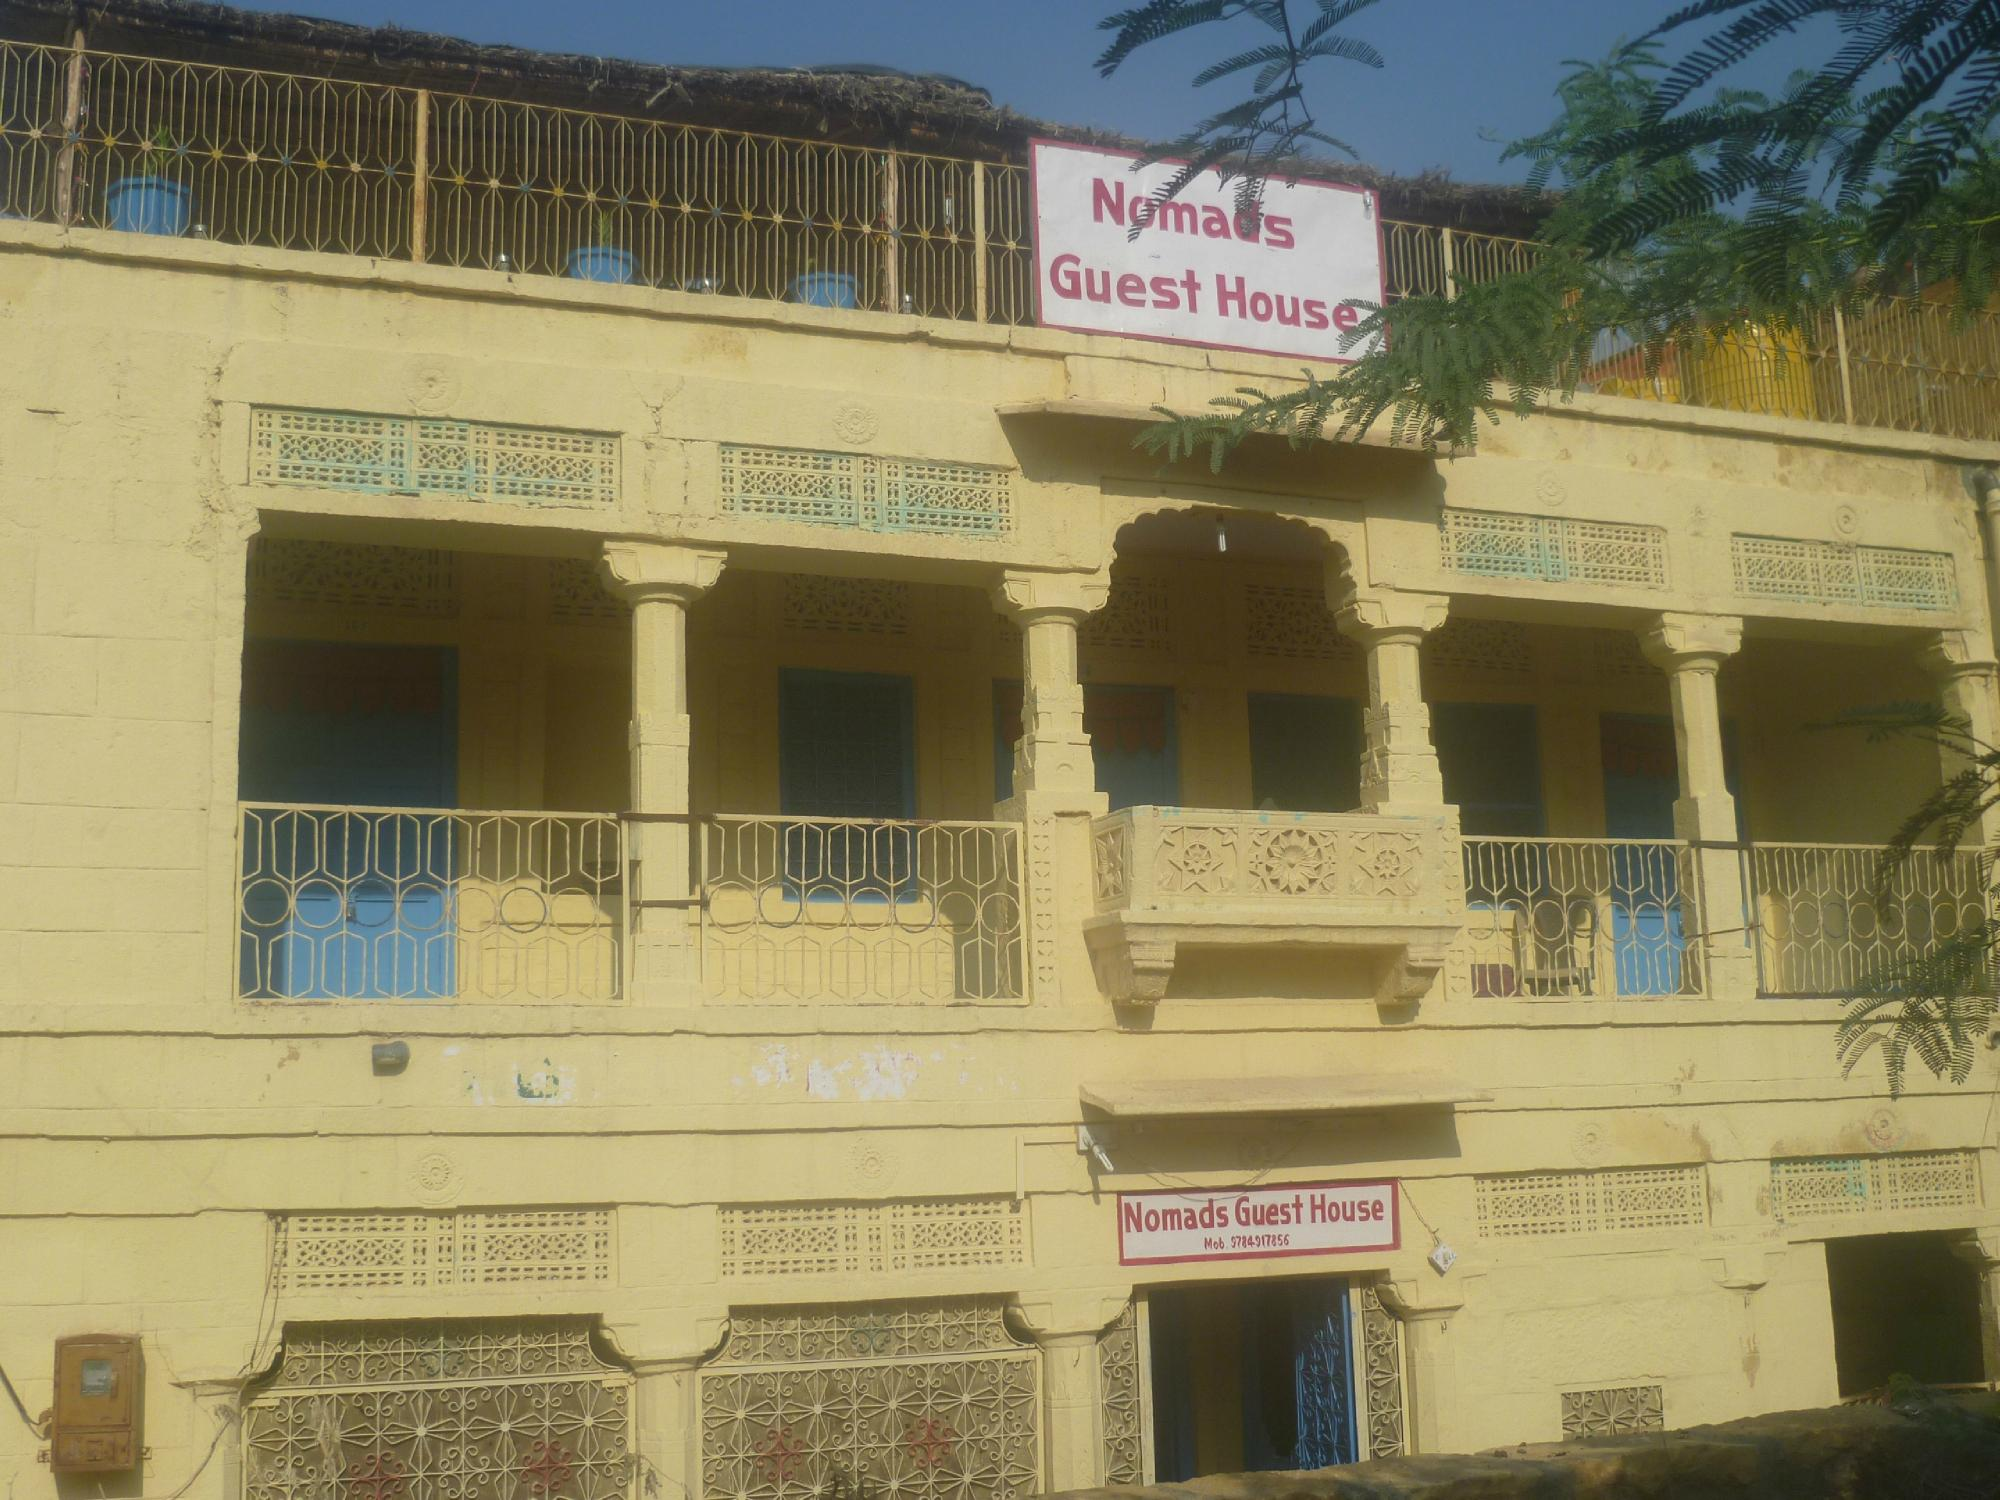 Nomads Guest House